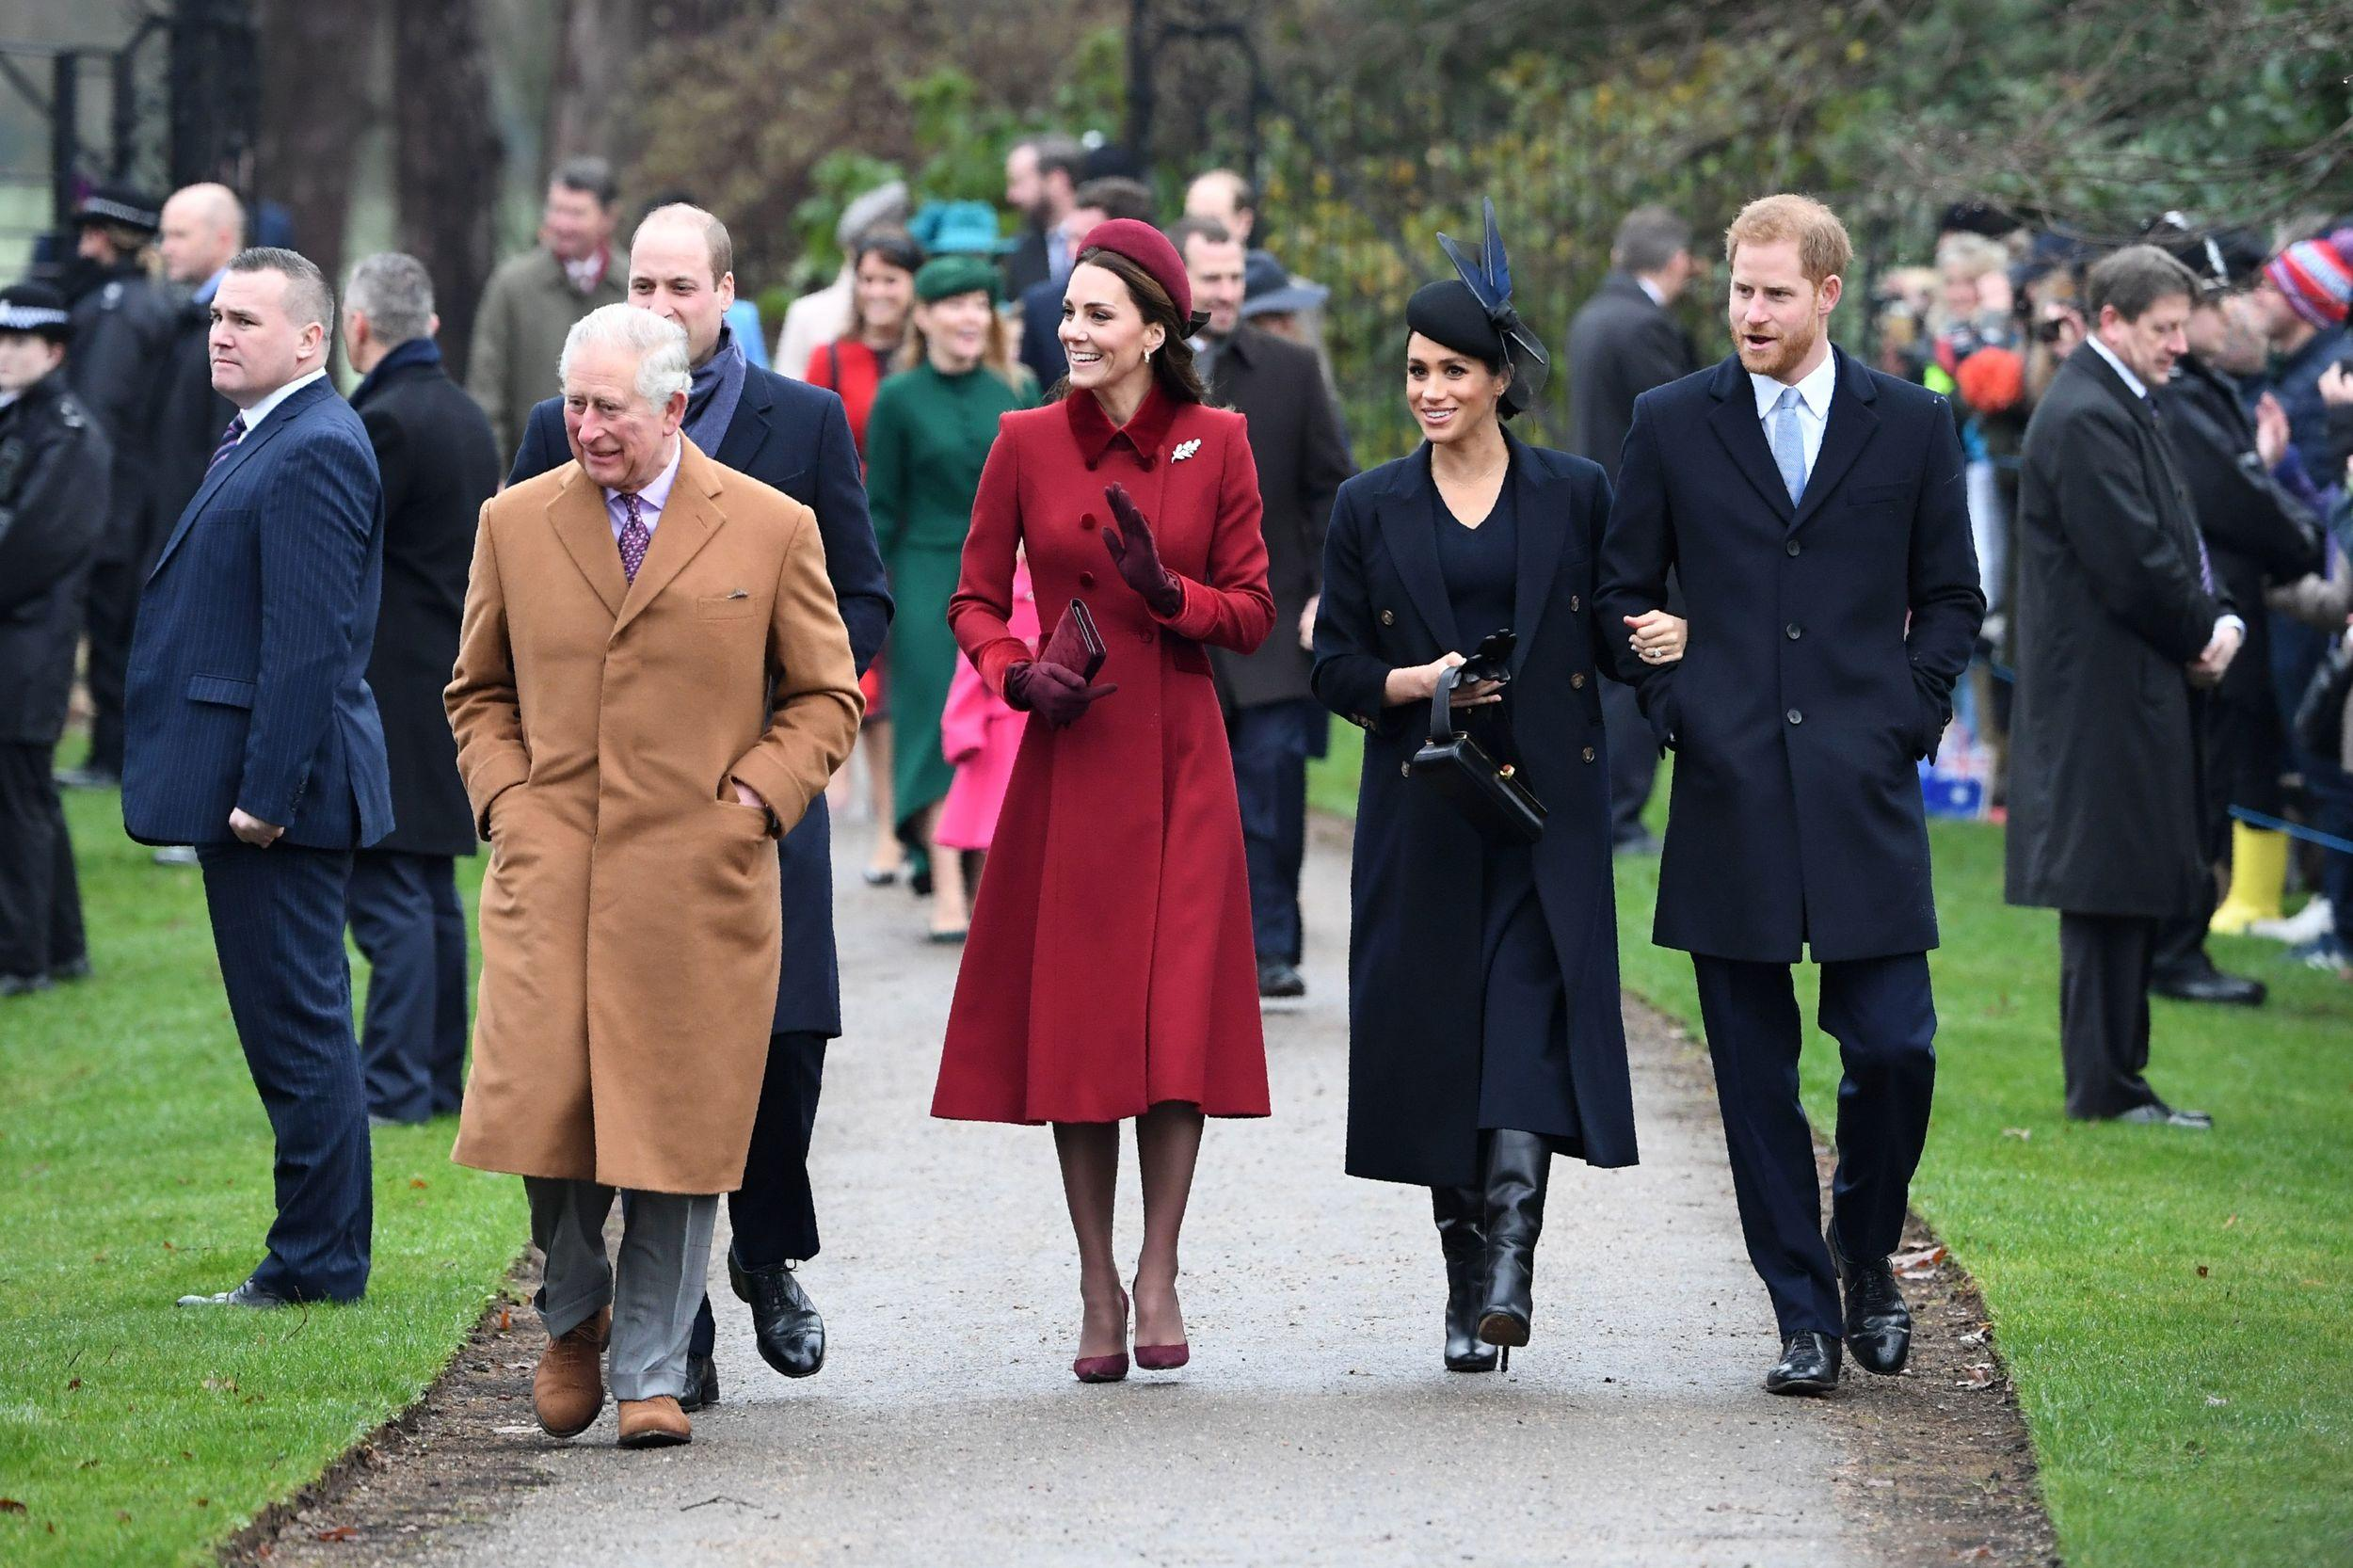 (L-R) Britain's Prince Charles, Prince of Wales, Britain's Prince William, Duke of Cambridge, Britain's Catherine, Duchess of Cambridge, Meghan, Duchess of Sussex and Britain's Prince Harry, Duke of Sussex arrive for the Royal Family's traditional Christmas Day service at St Mary Magdalene Church in Sandringham, Norfolk, eastern England, on December 25, 2018. (Photo by Paul ELLIS / AFP) (Photo credit should read PAUL ELLIS/AFP/Getty Images)